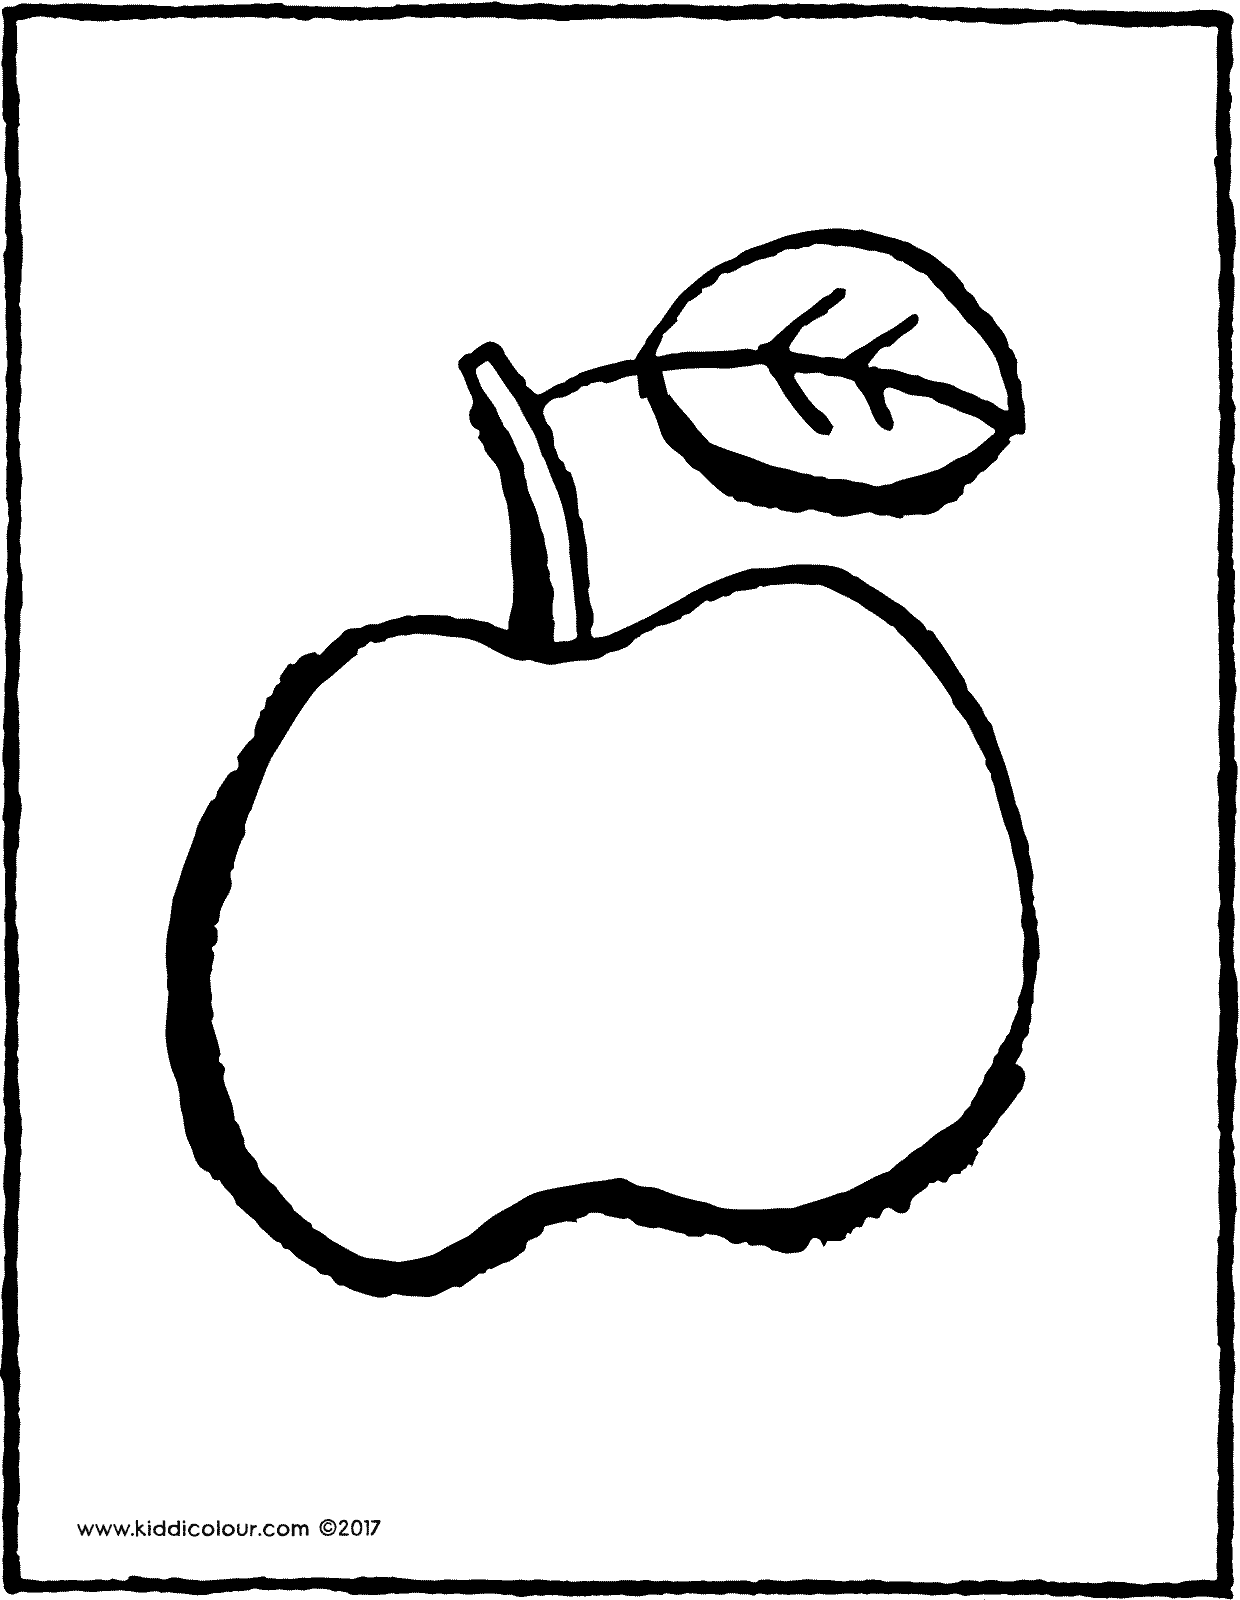 apple colouring page drawing picture 01V